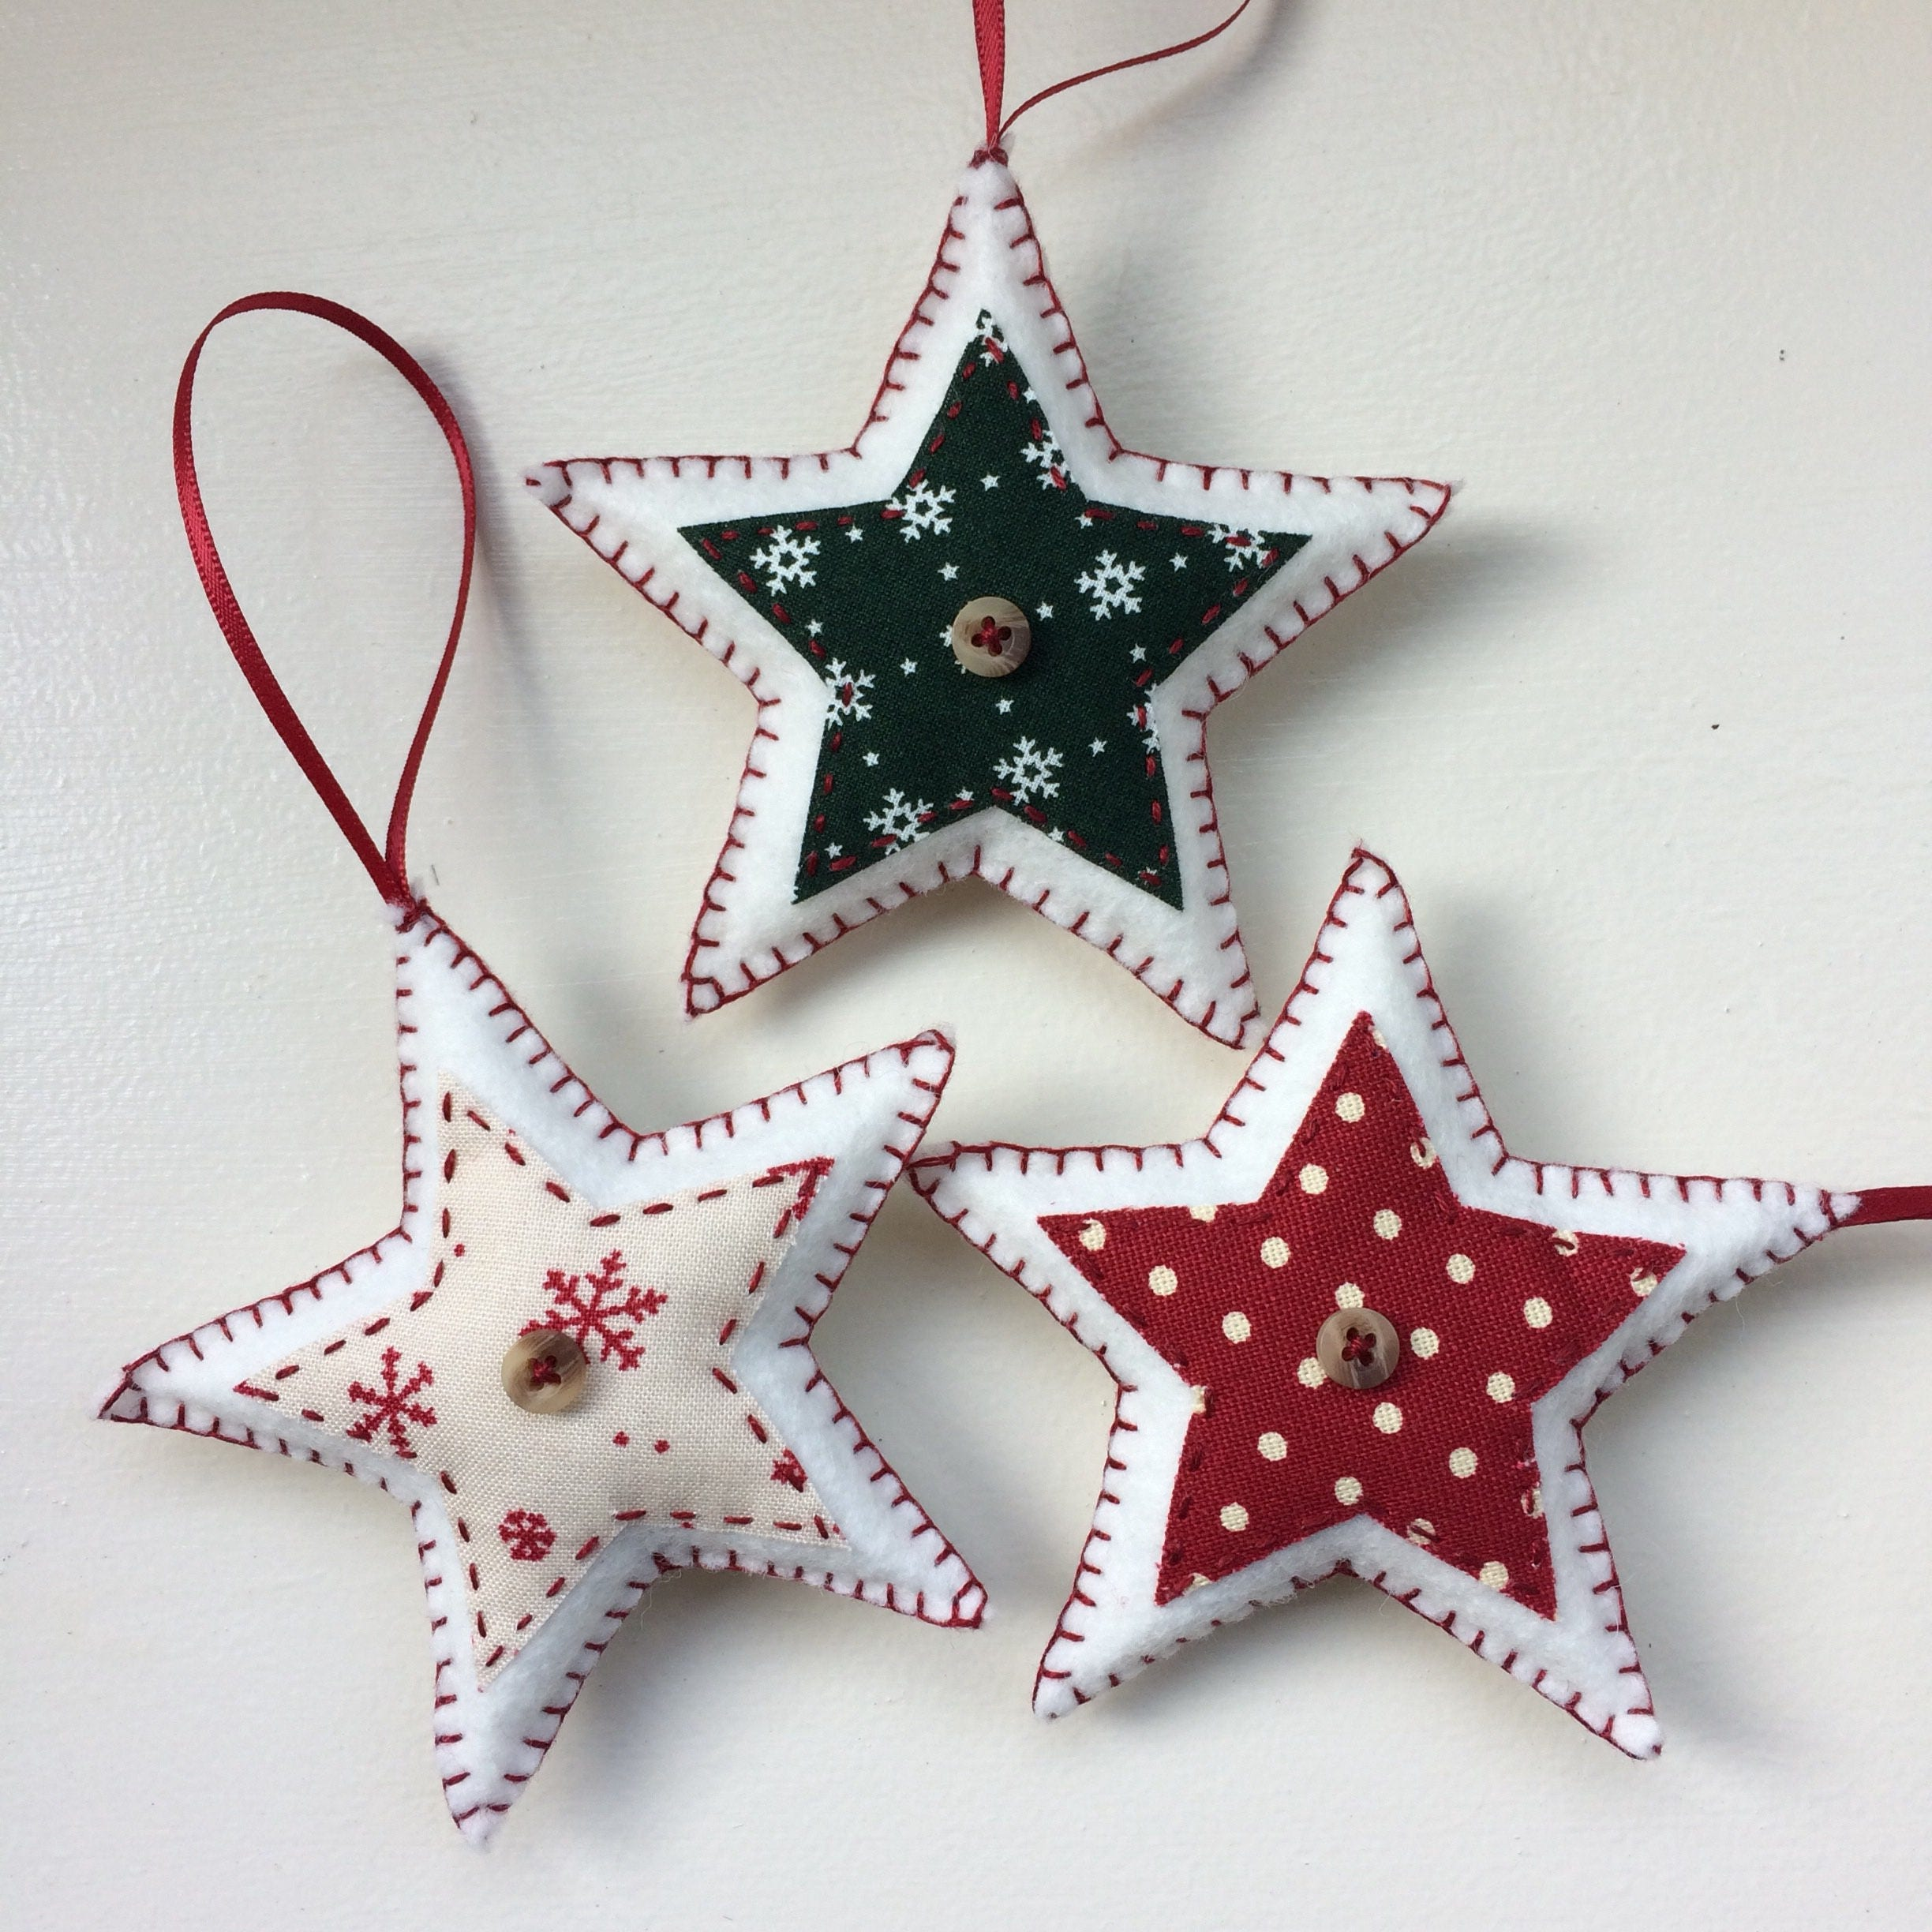 The Best Handmade Christmas Decorations: Set Of Three Star-shaped Felt Christmas Decorations